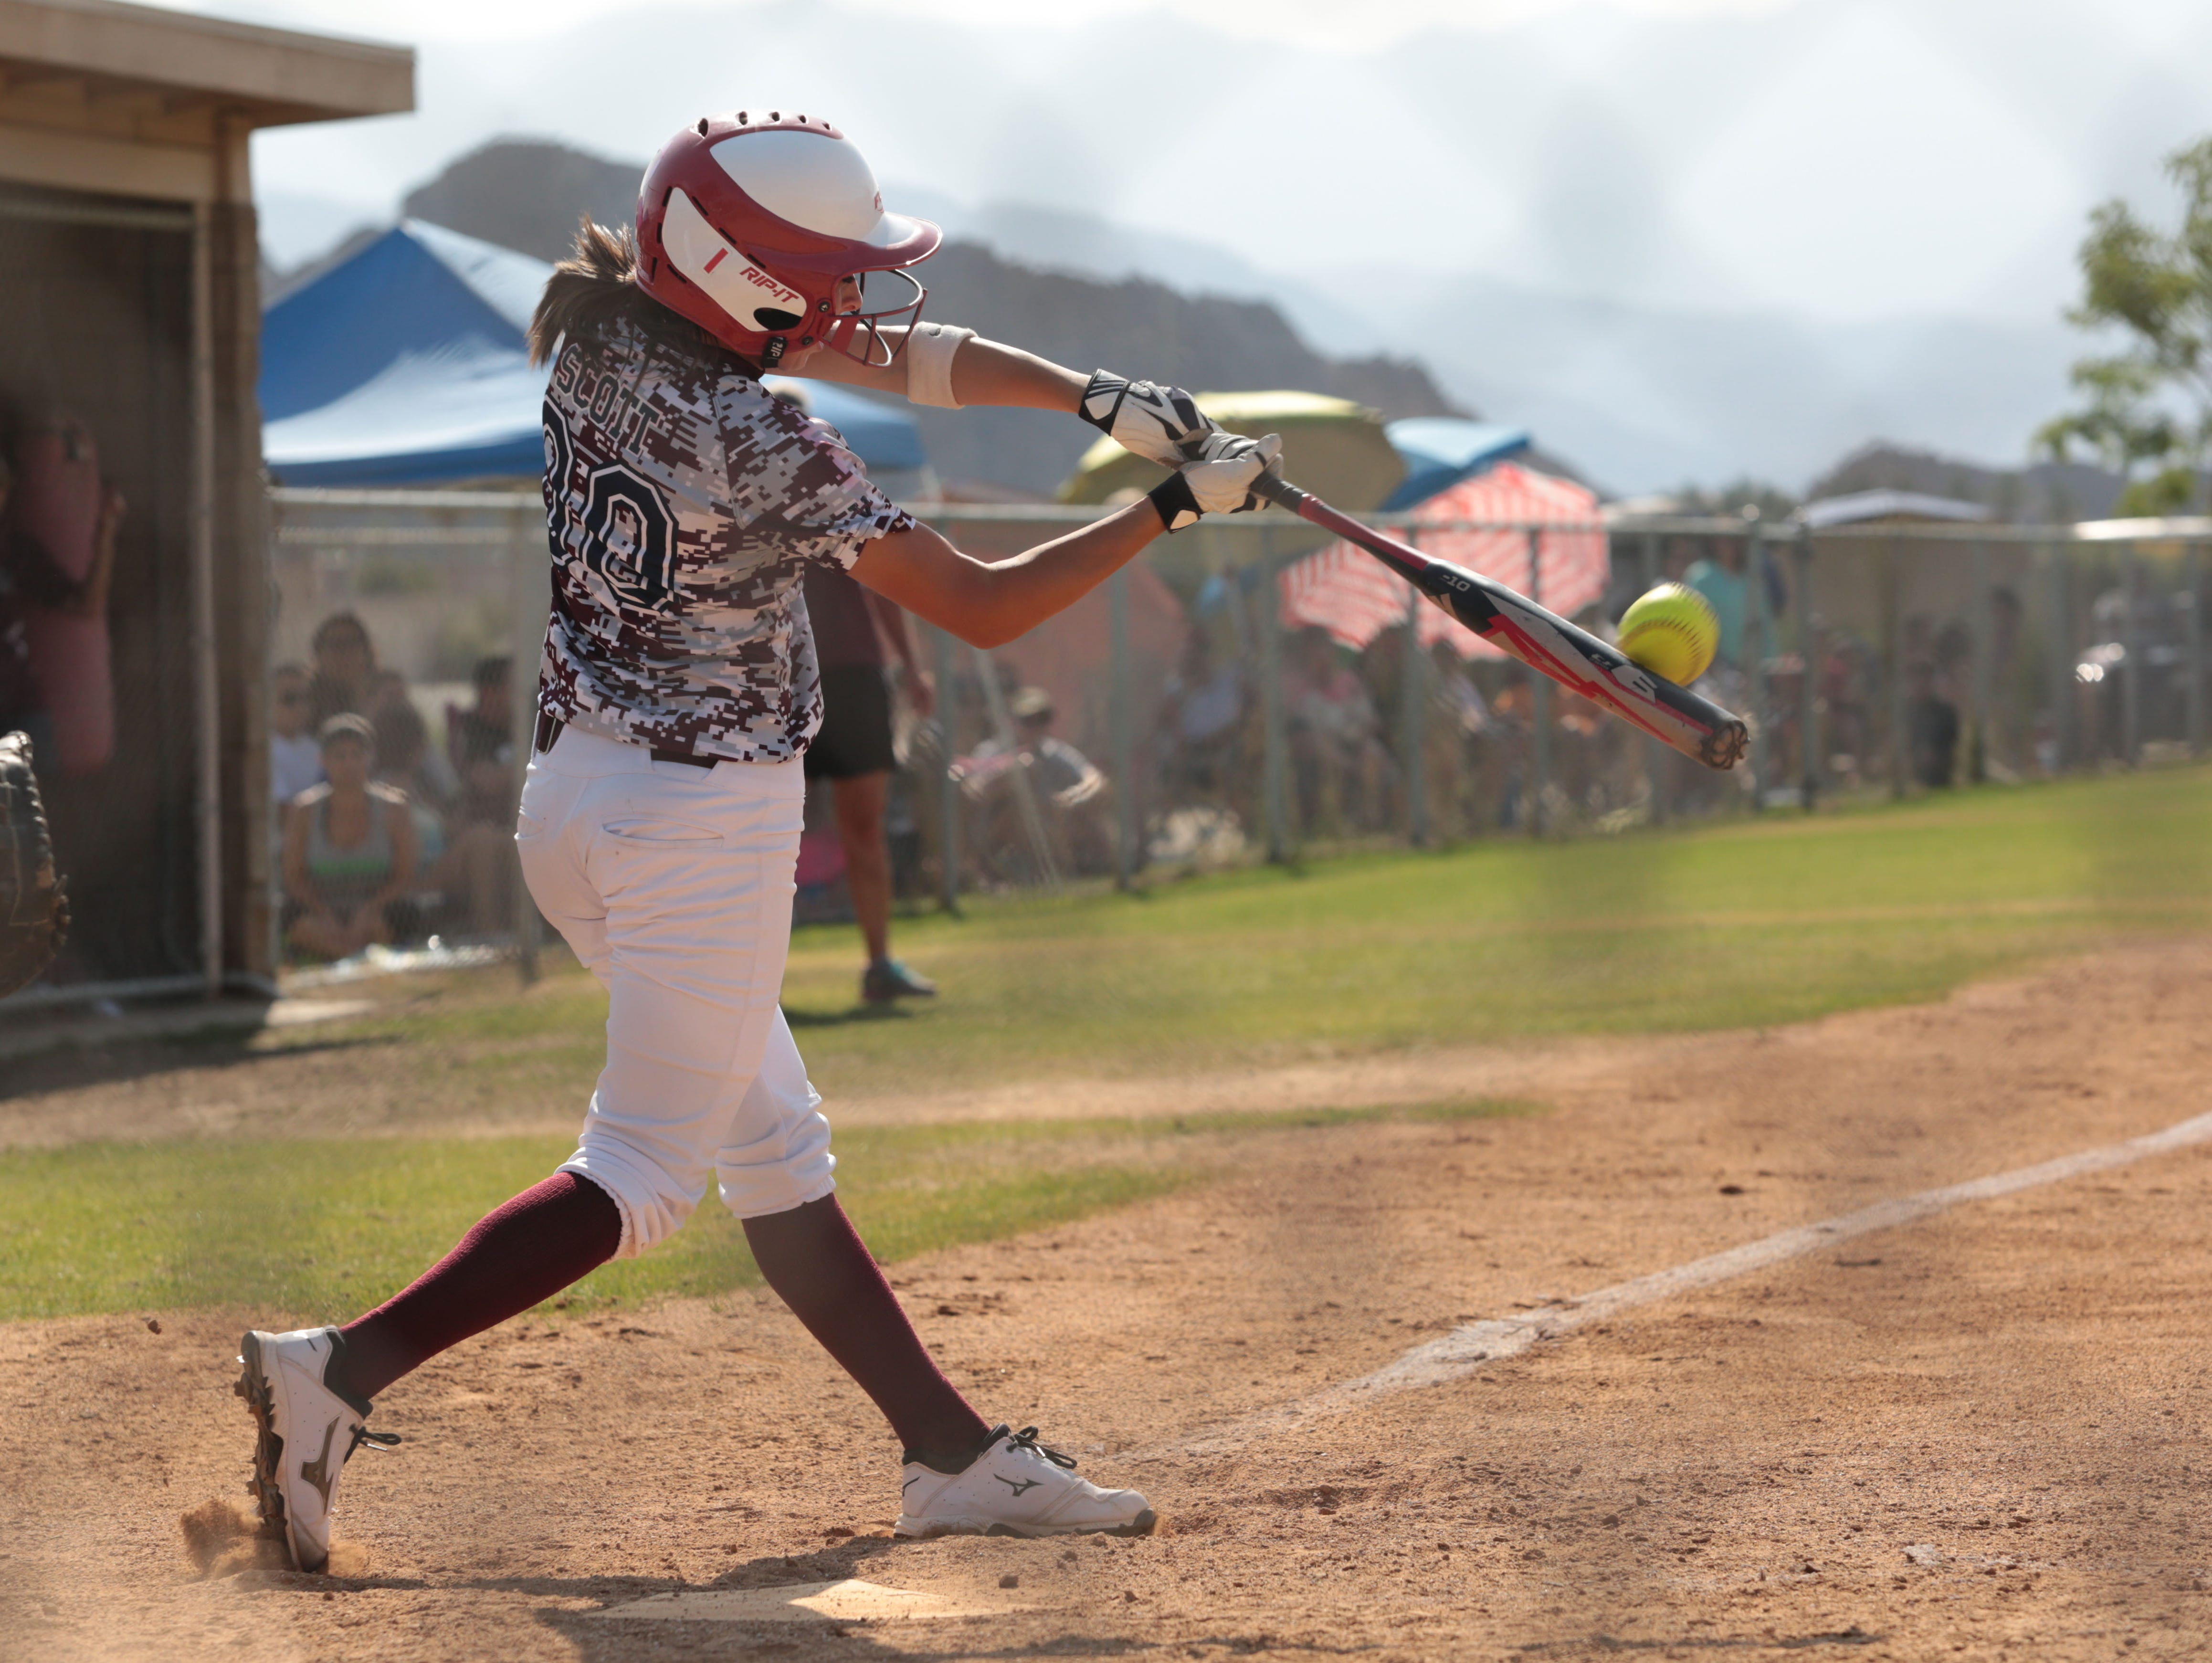 La Quinta's Kendyl Scott hits a home run in a high school game in this May 2014 file photo.